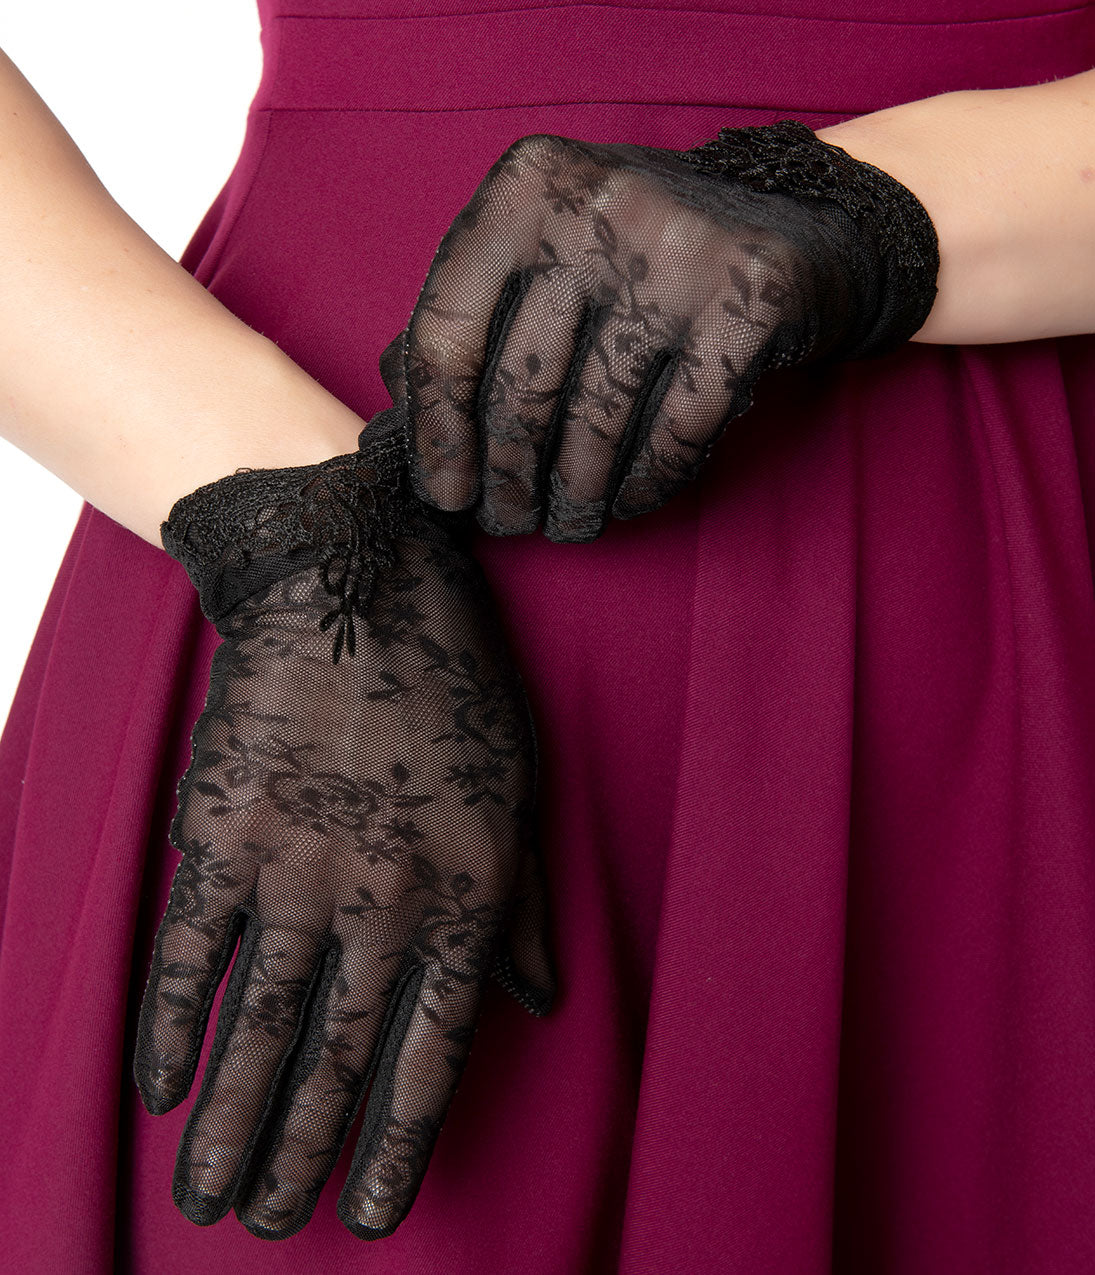 Vintage Style Gloves- Long, Wrist, Evening, Day, Leather, Lace Unique Vintage Black Mesh Embroidered Lace Wrist Gloves $22.00 AT vintagedancer.com